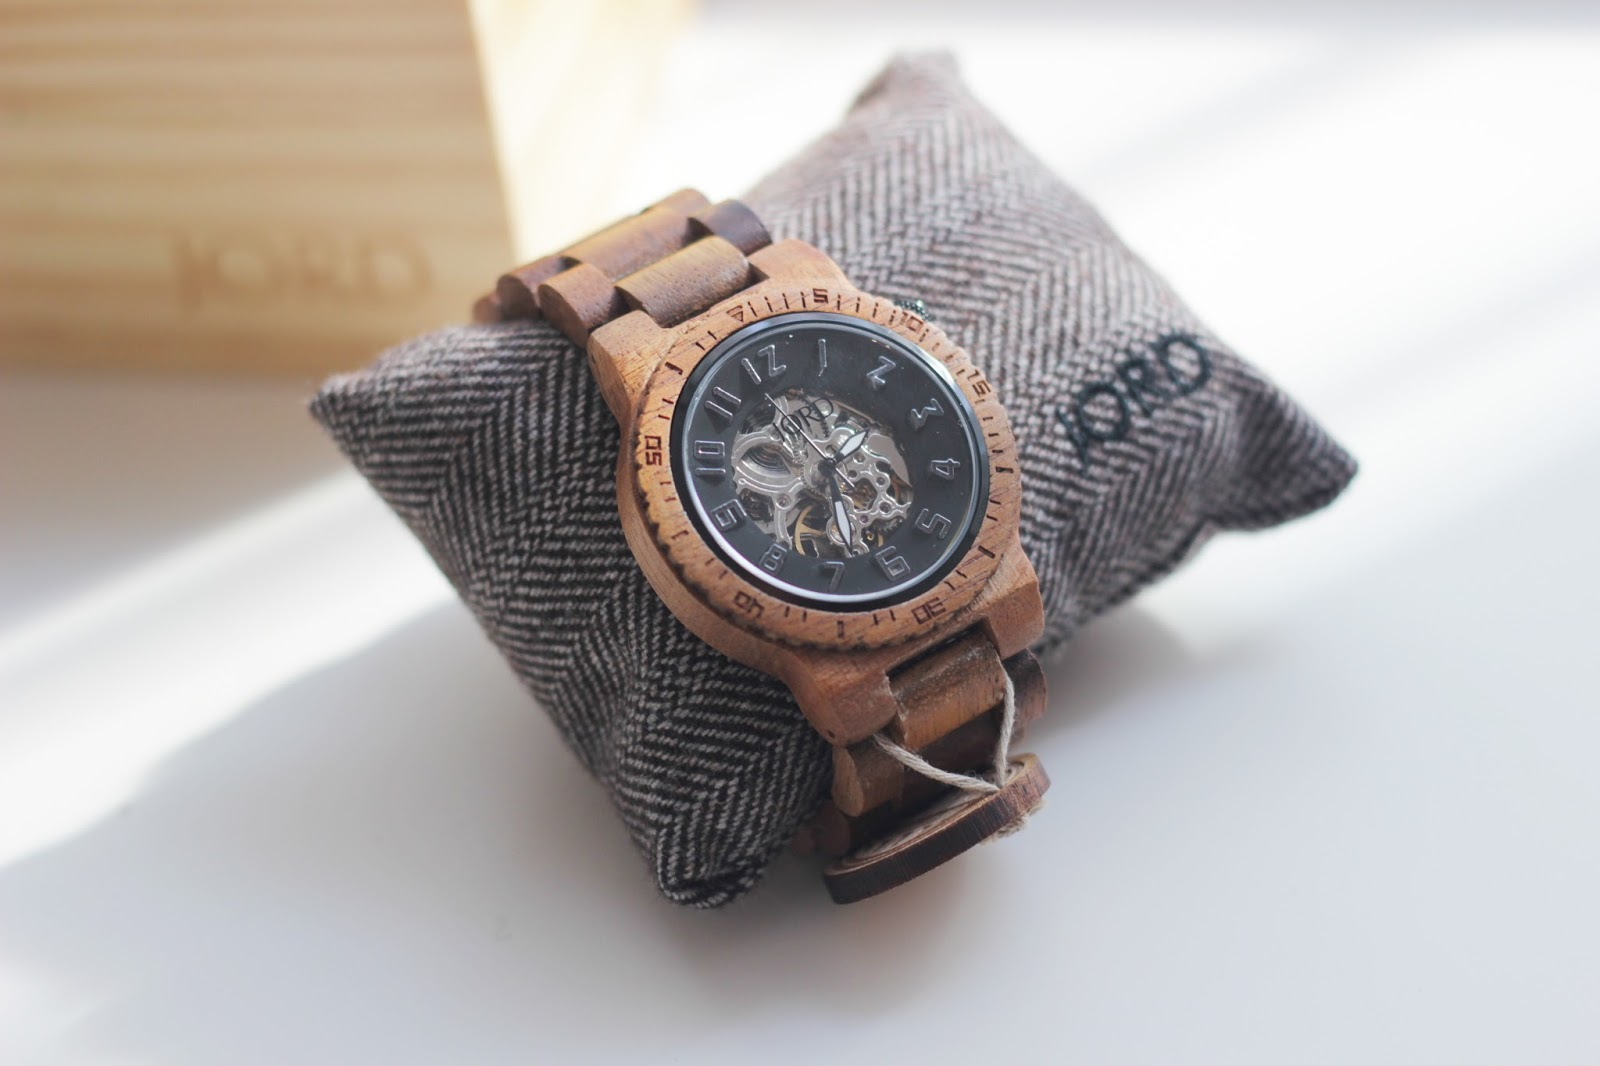 black with watches true truwood products download quartz hawk watch sandalwood made wooden wood edit